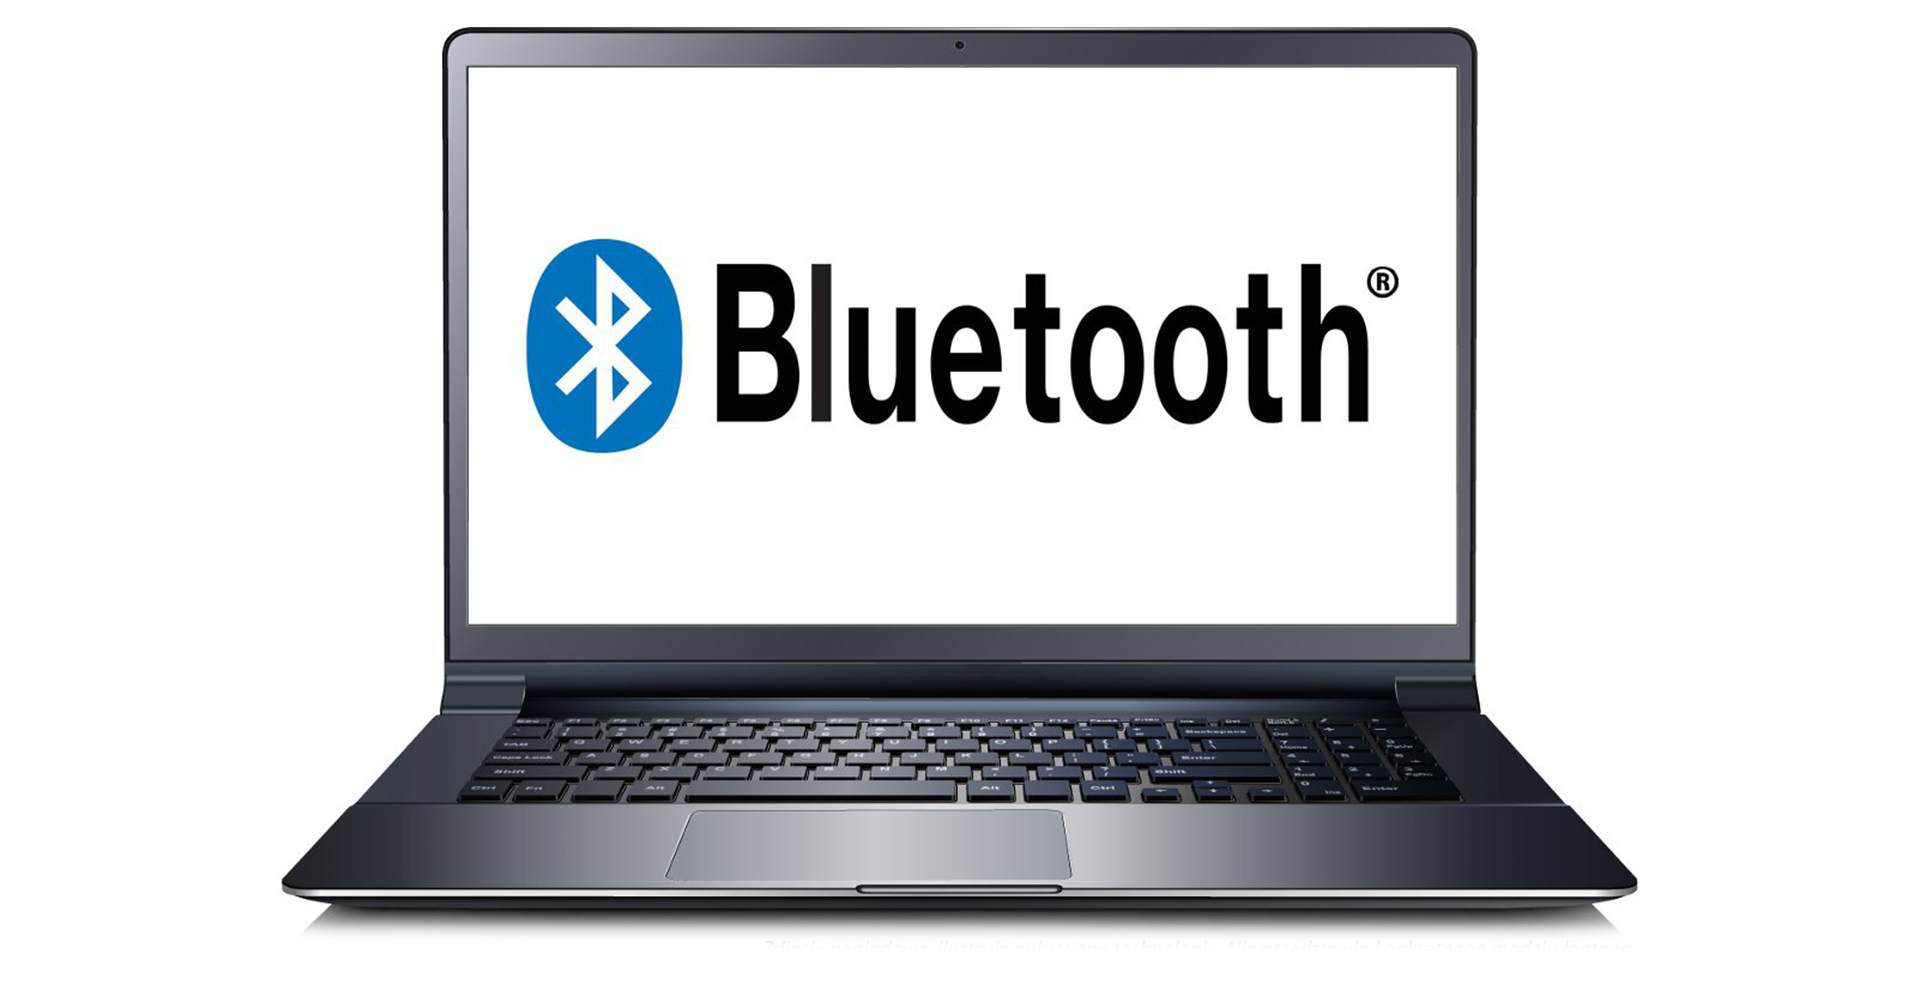 Acer Aspire F F5-573G (NX.GD6EL.022)                             Bluetooth